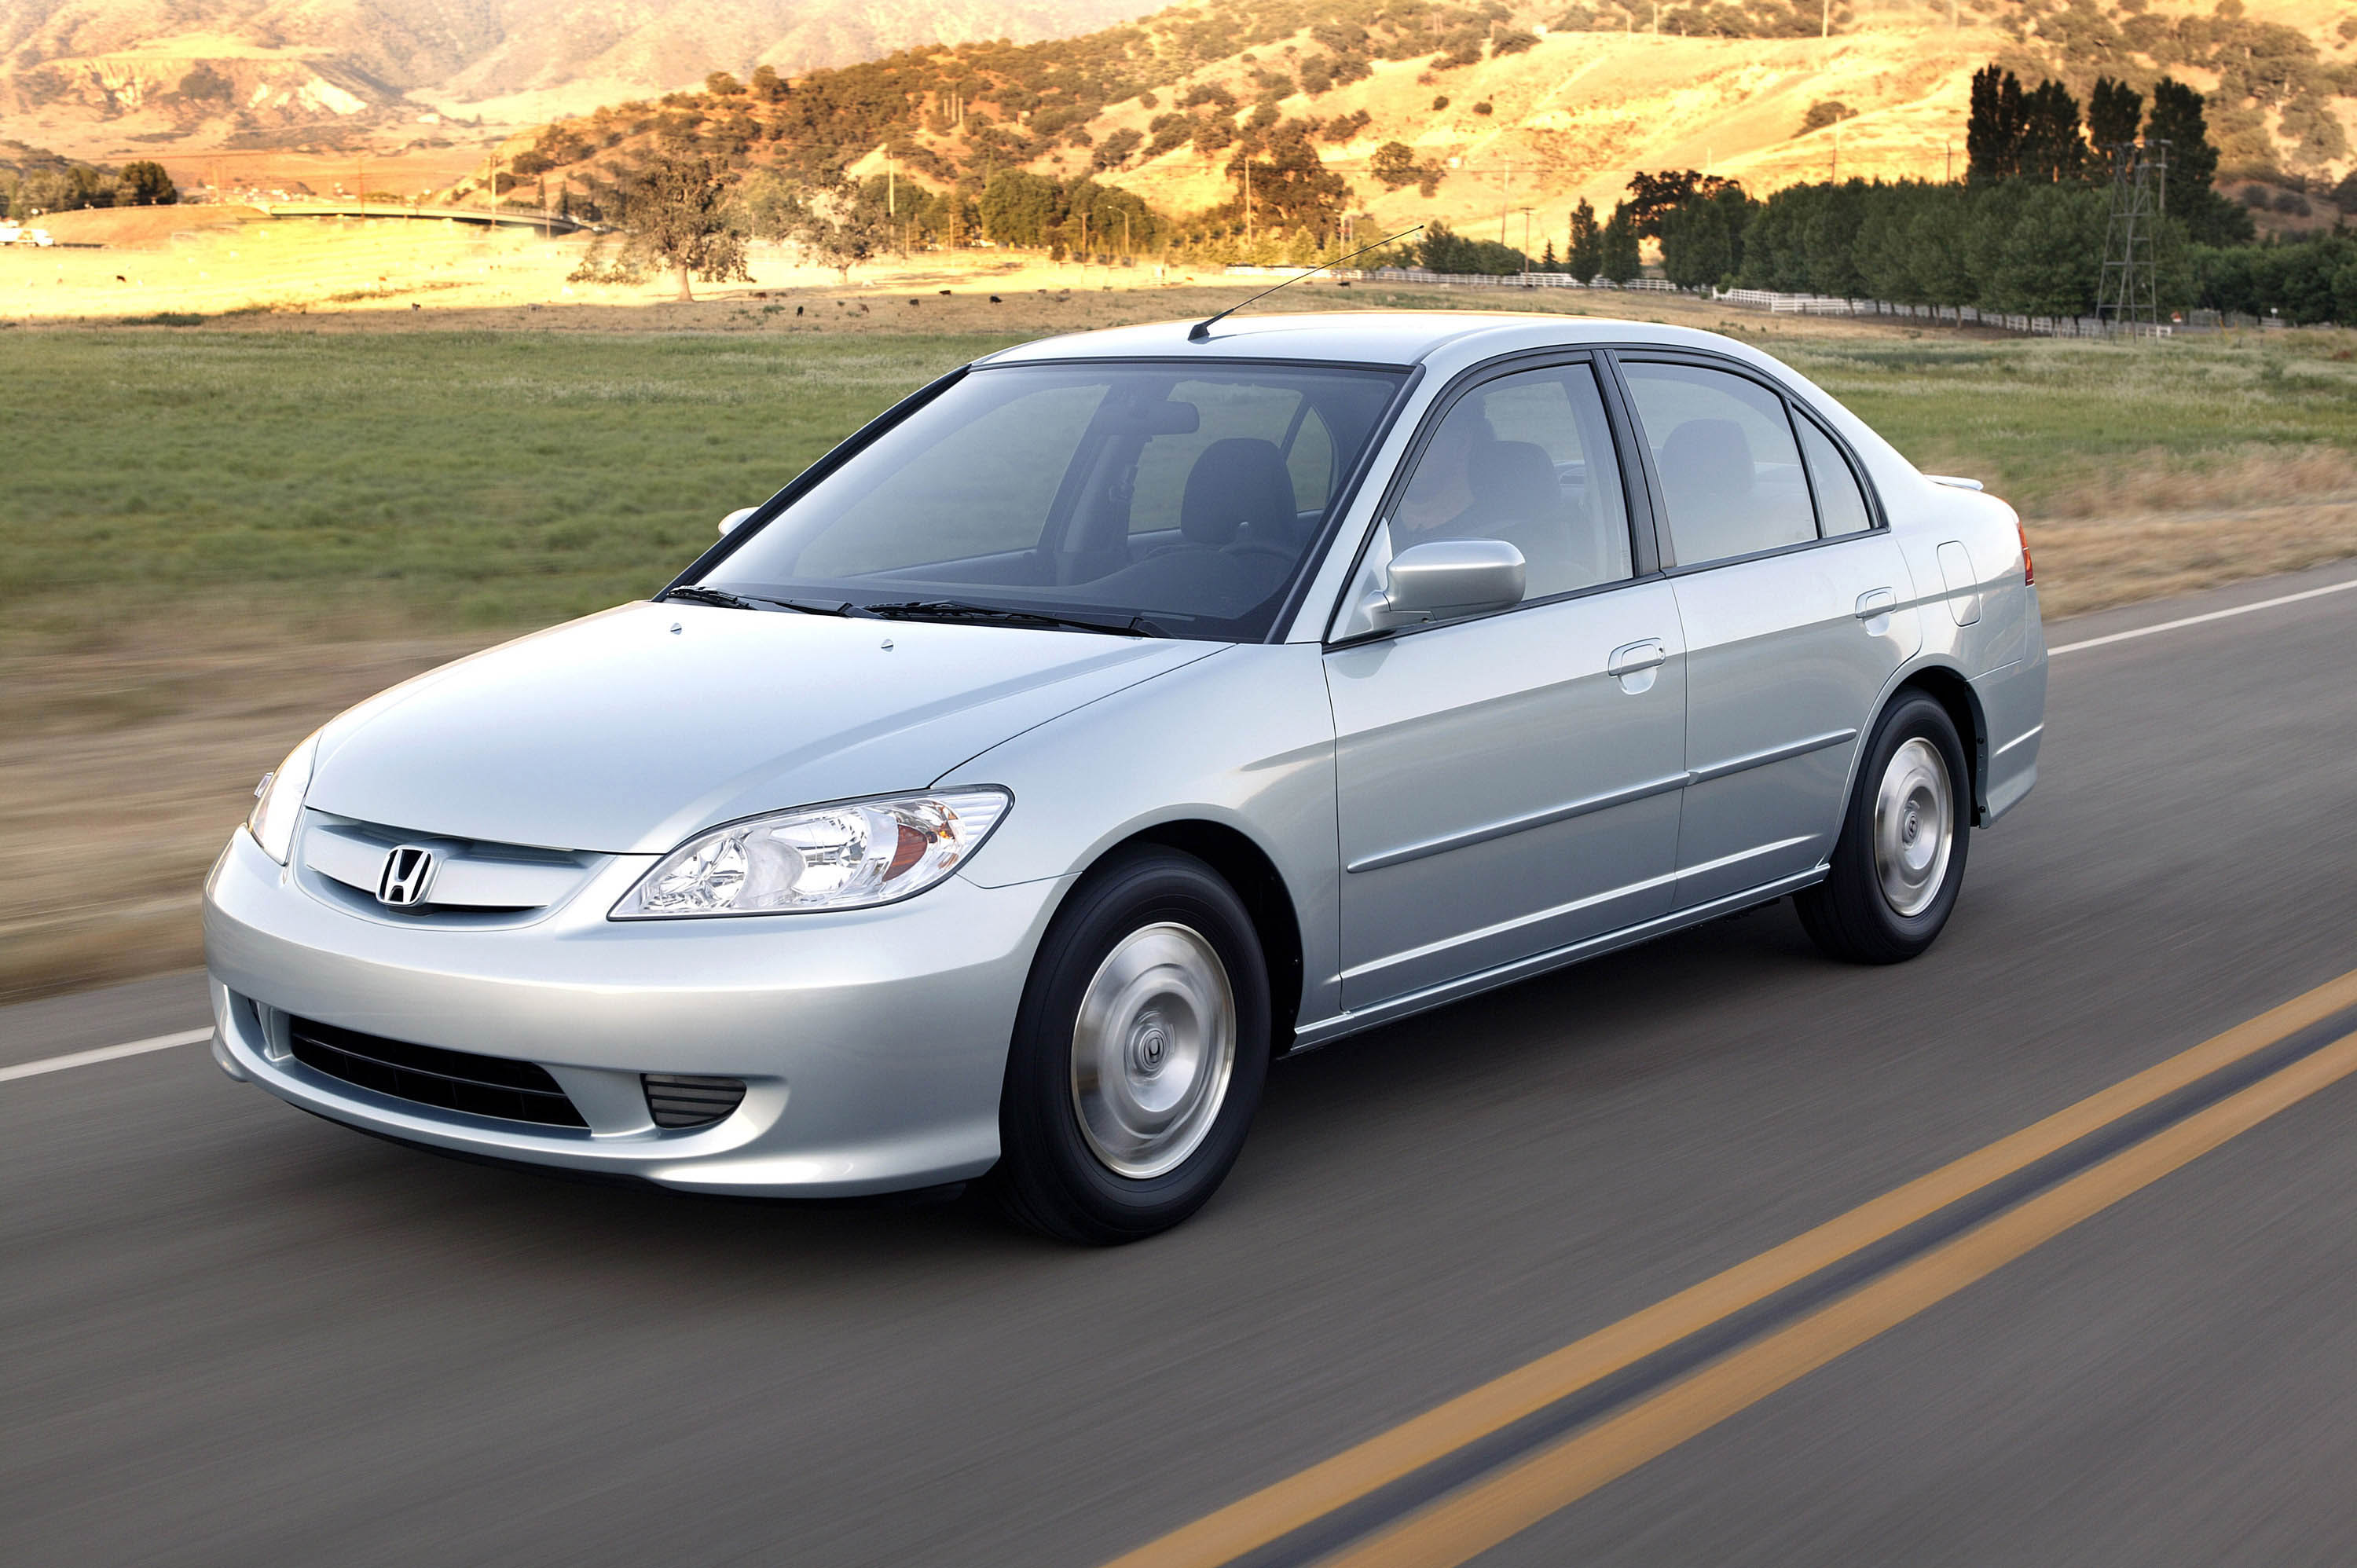 2005 Honda Civic Hybrid Thumbnail Photo 72482